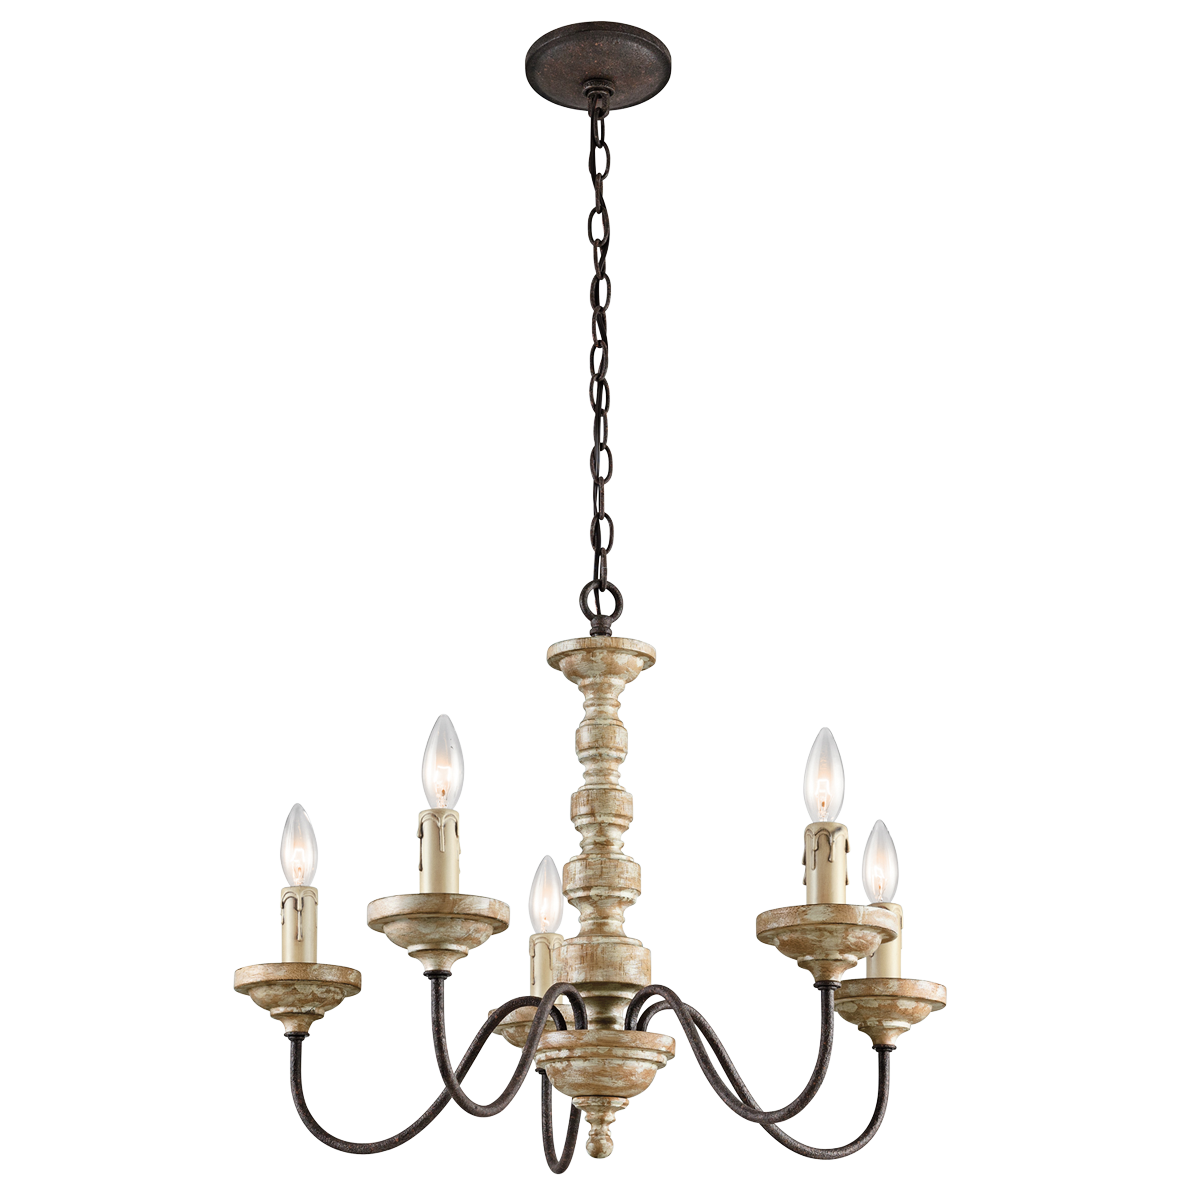 Charming Briellis 5 Light Chandelier Vintage Weathered Wh By Cardello Lighting And Decor For Home Ideas